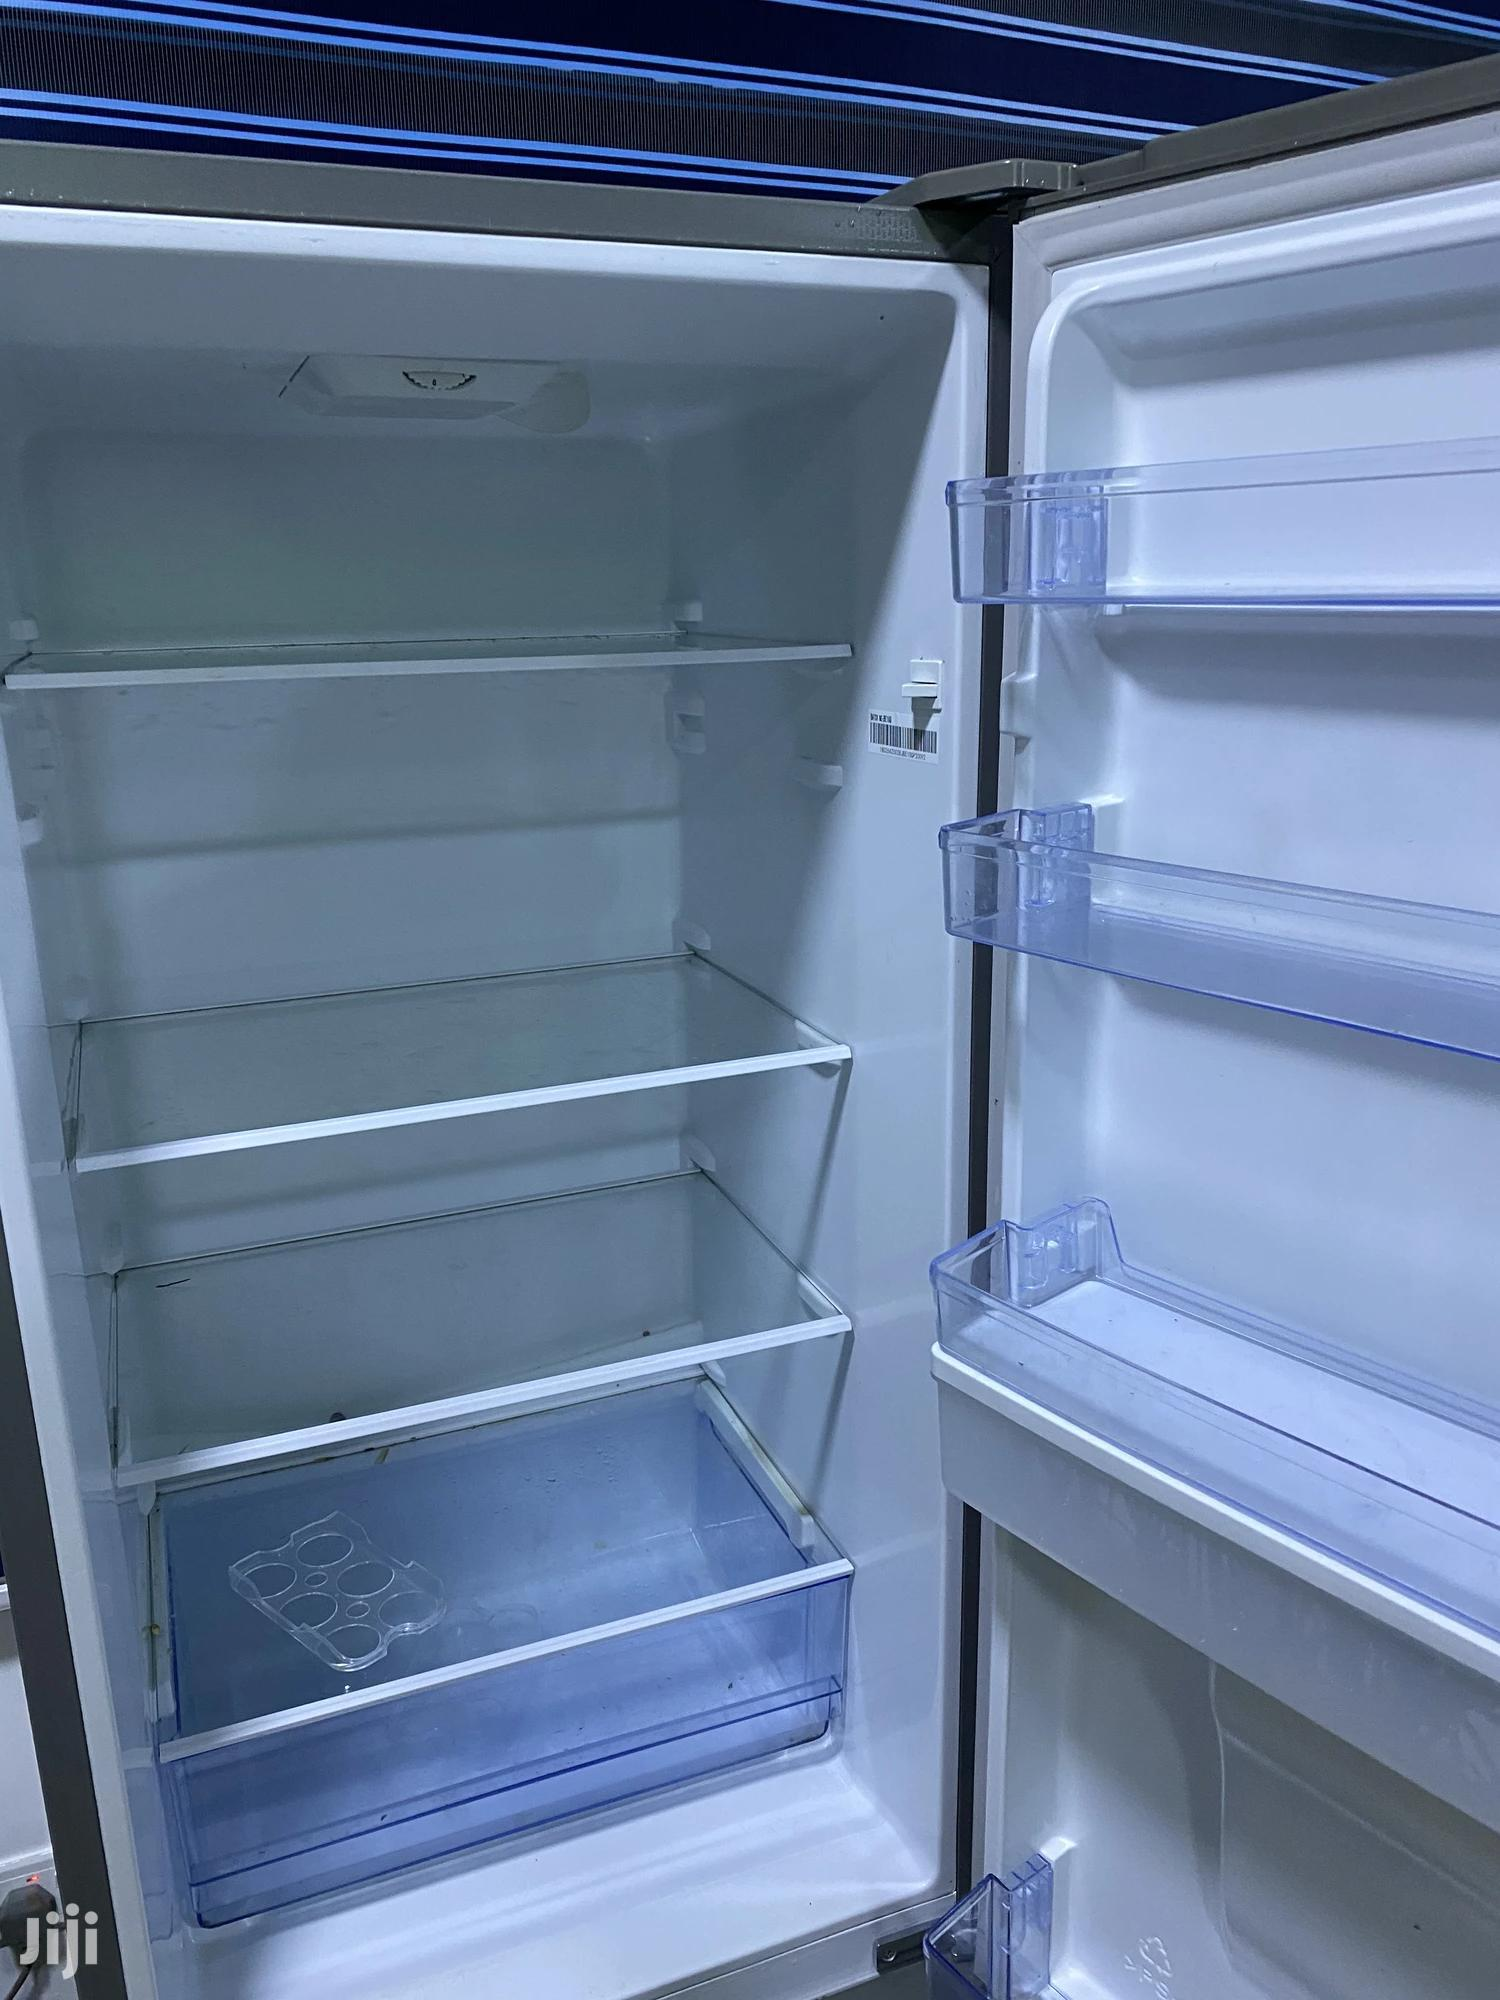 Double Door Fridge With Dispenser For Sale | Kitchen Appliances for sale in Achimota, Greater Accra, Ghana